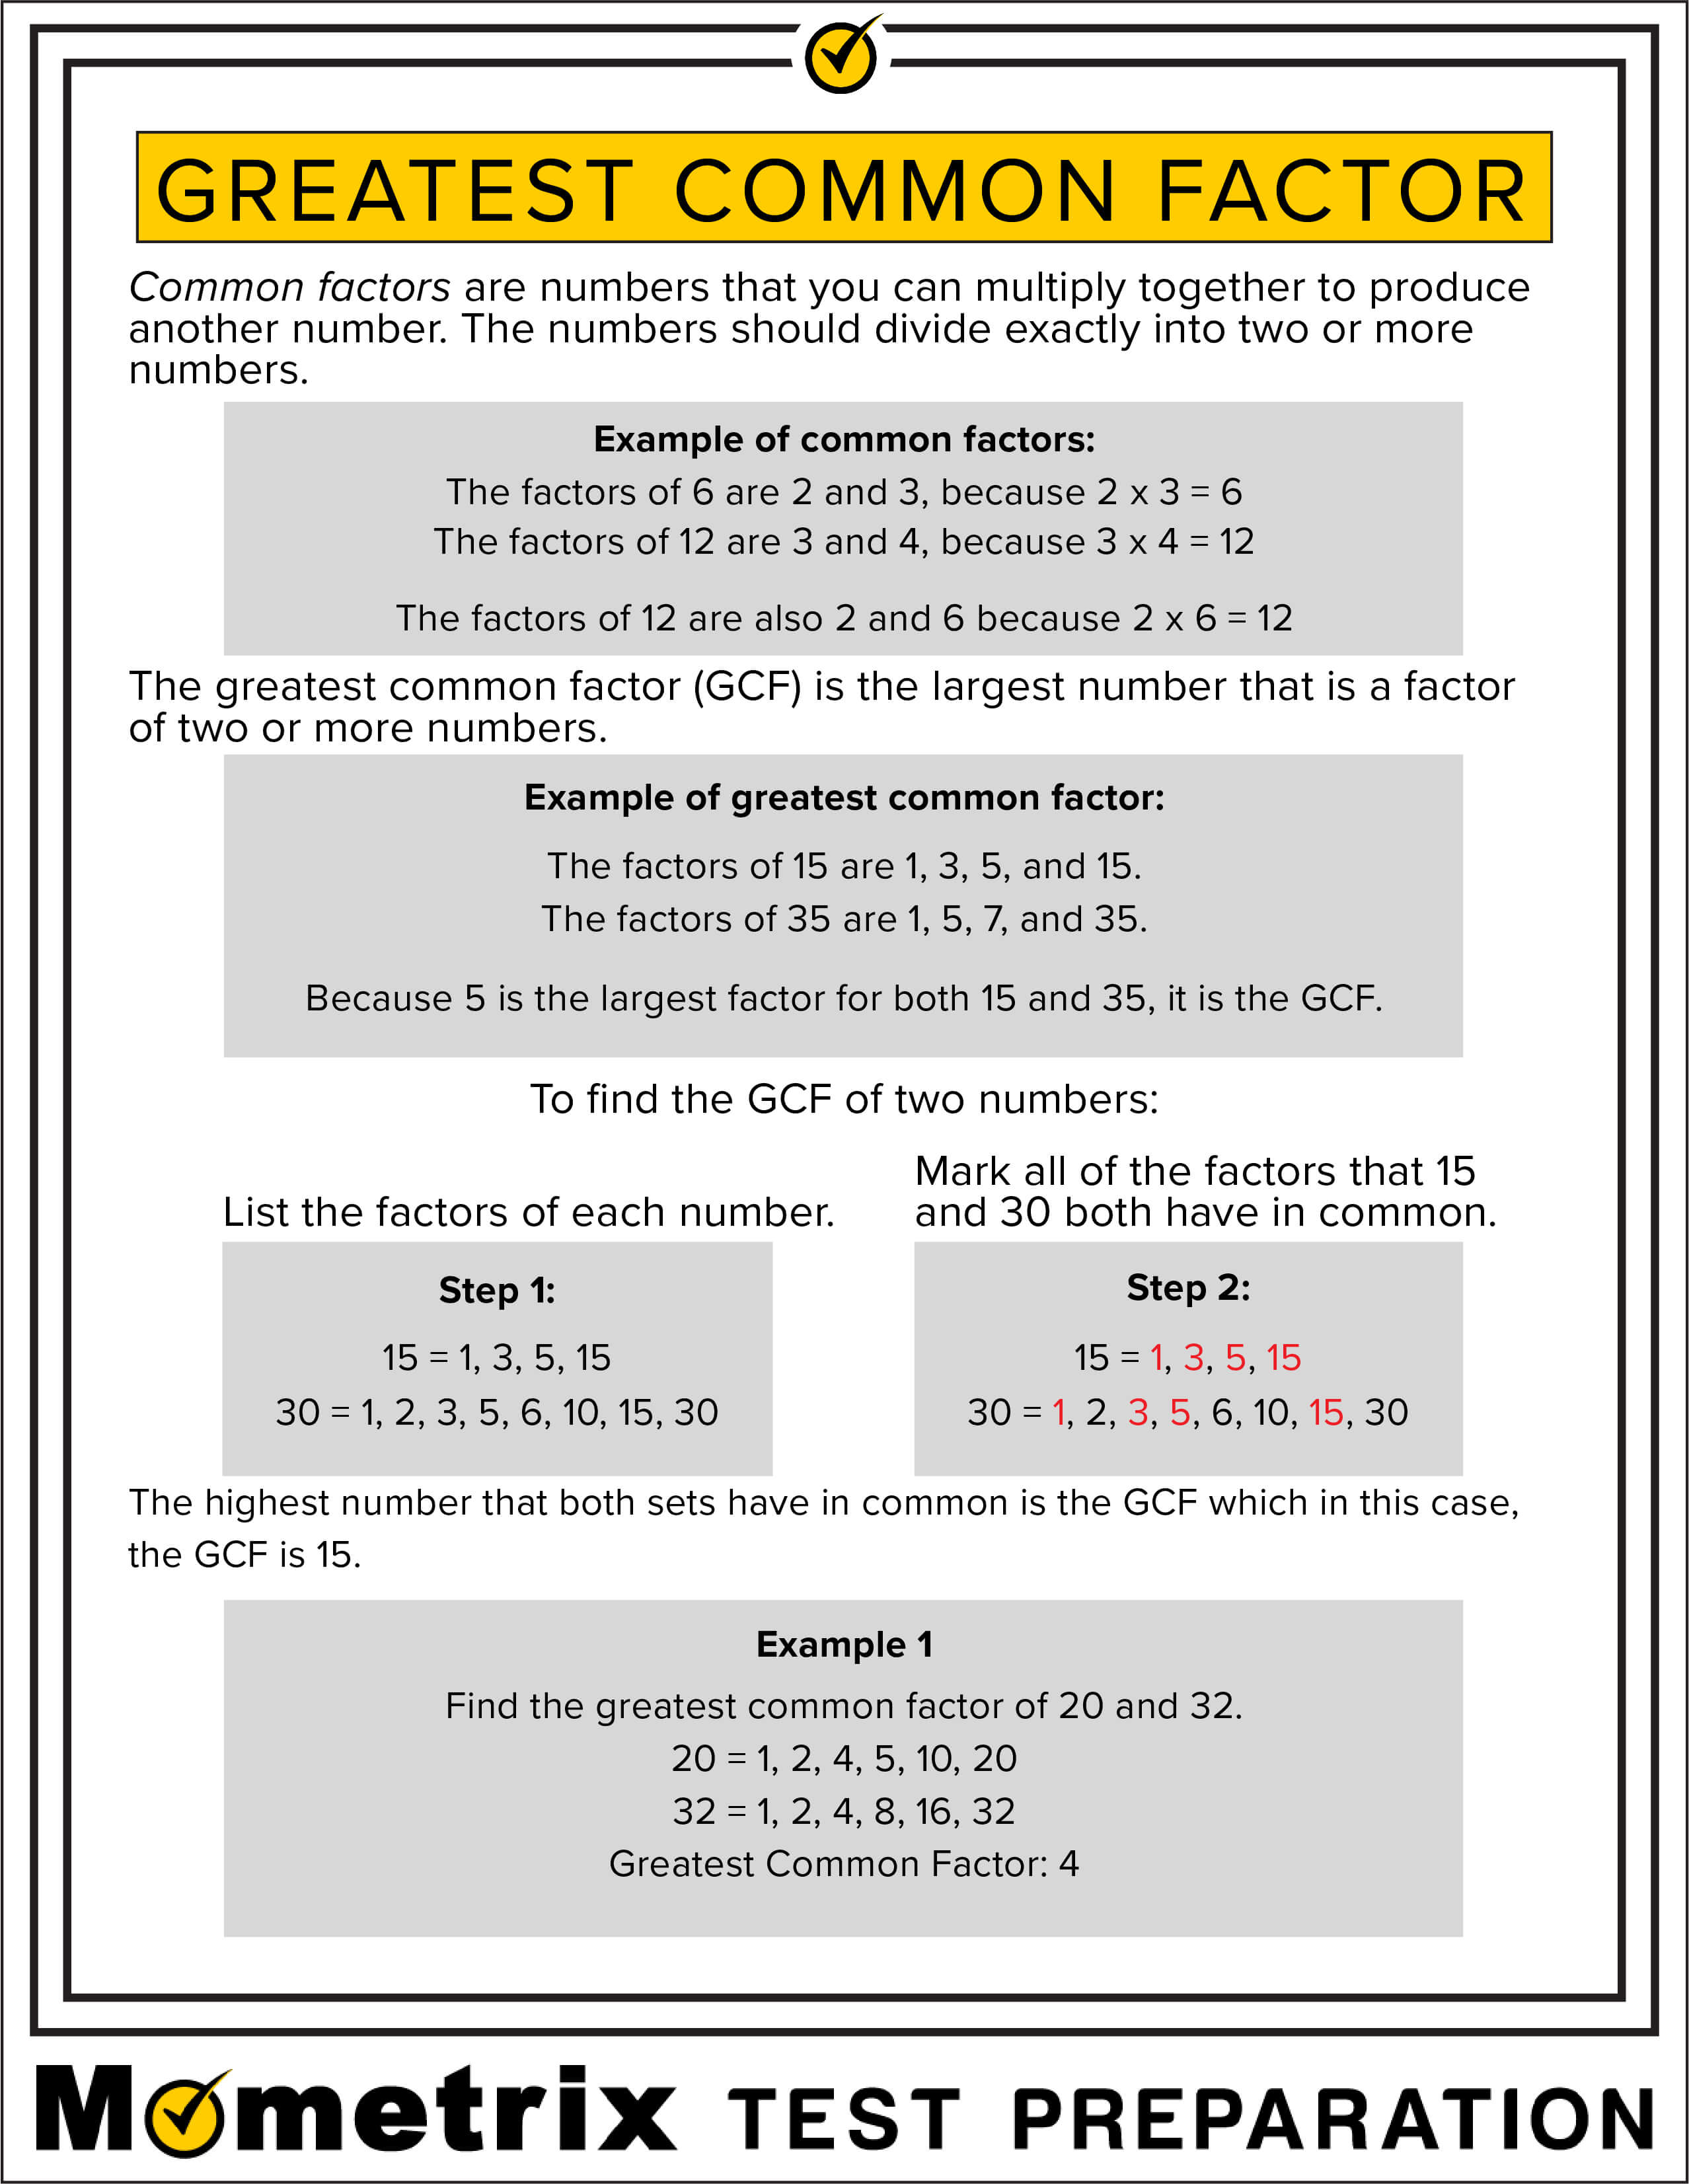 Greatest Common Factor Fact Sheet